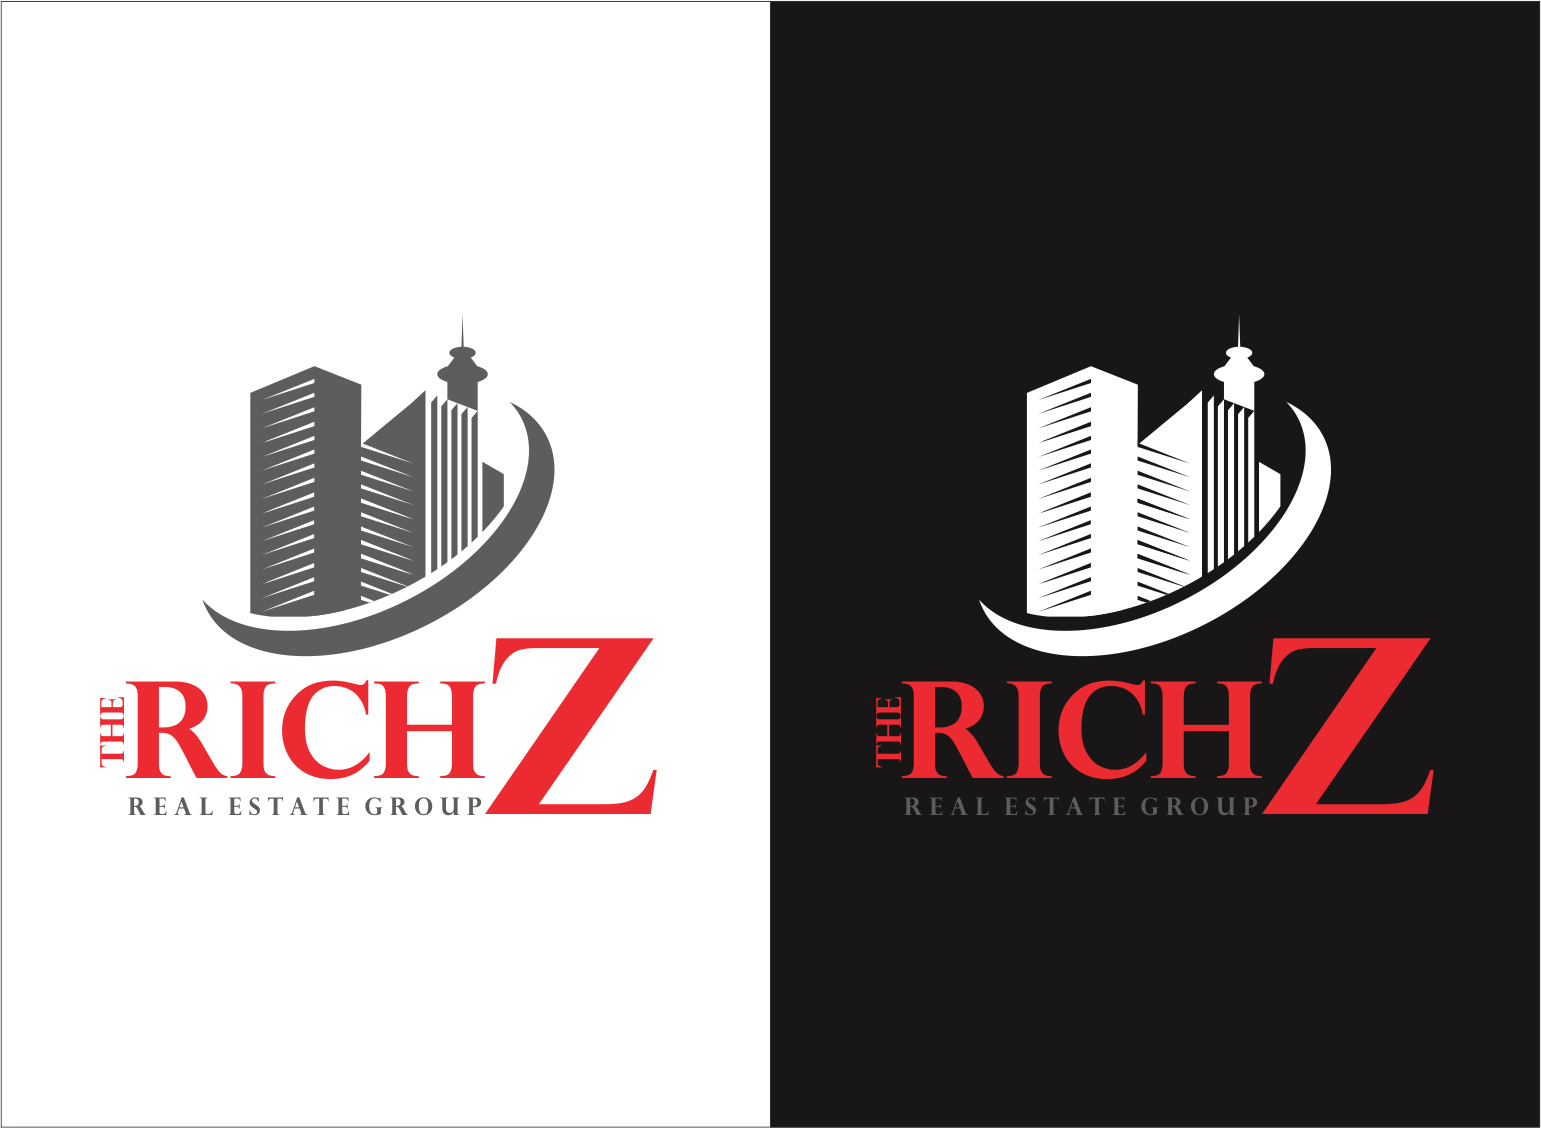 Logo Design by Armada Jamaluddin - Entry No. 373 in the Logo Design Contest The Rich Z. Real Estate Group Logo Design.